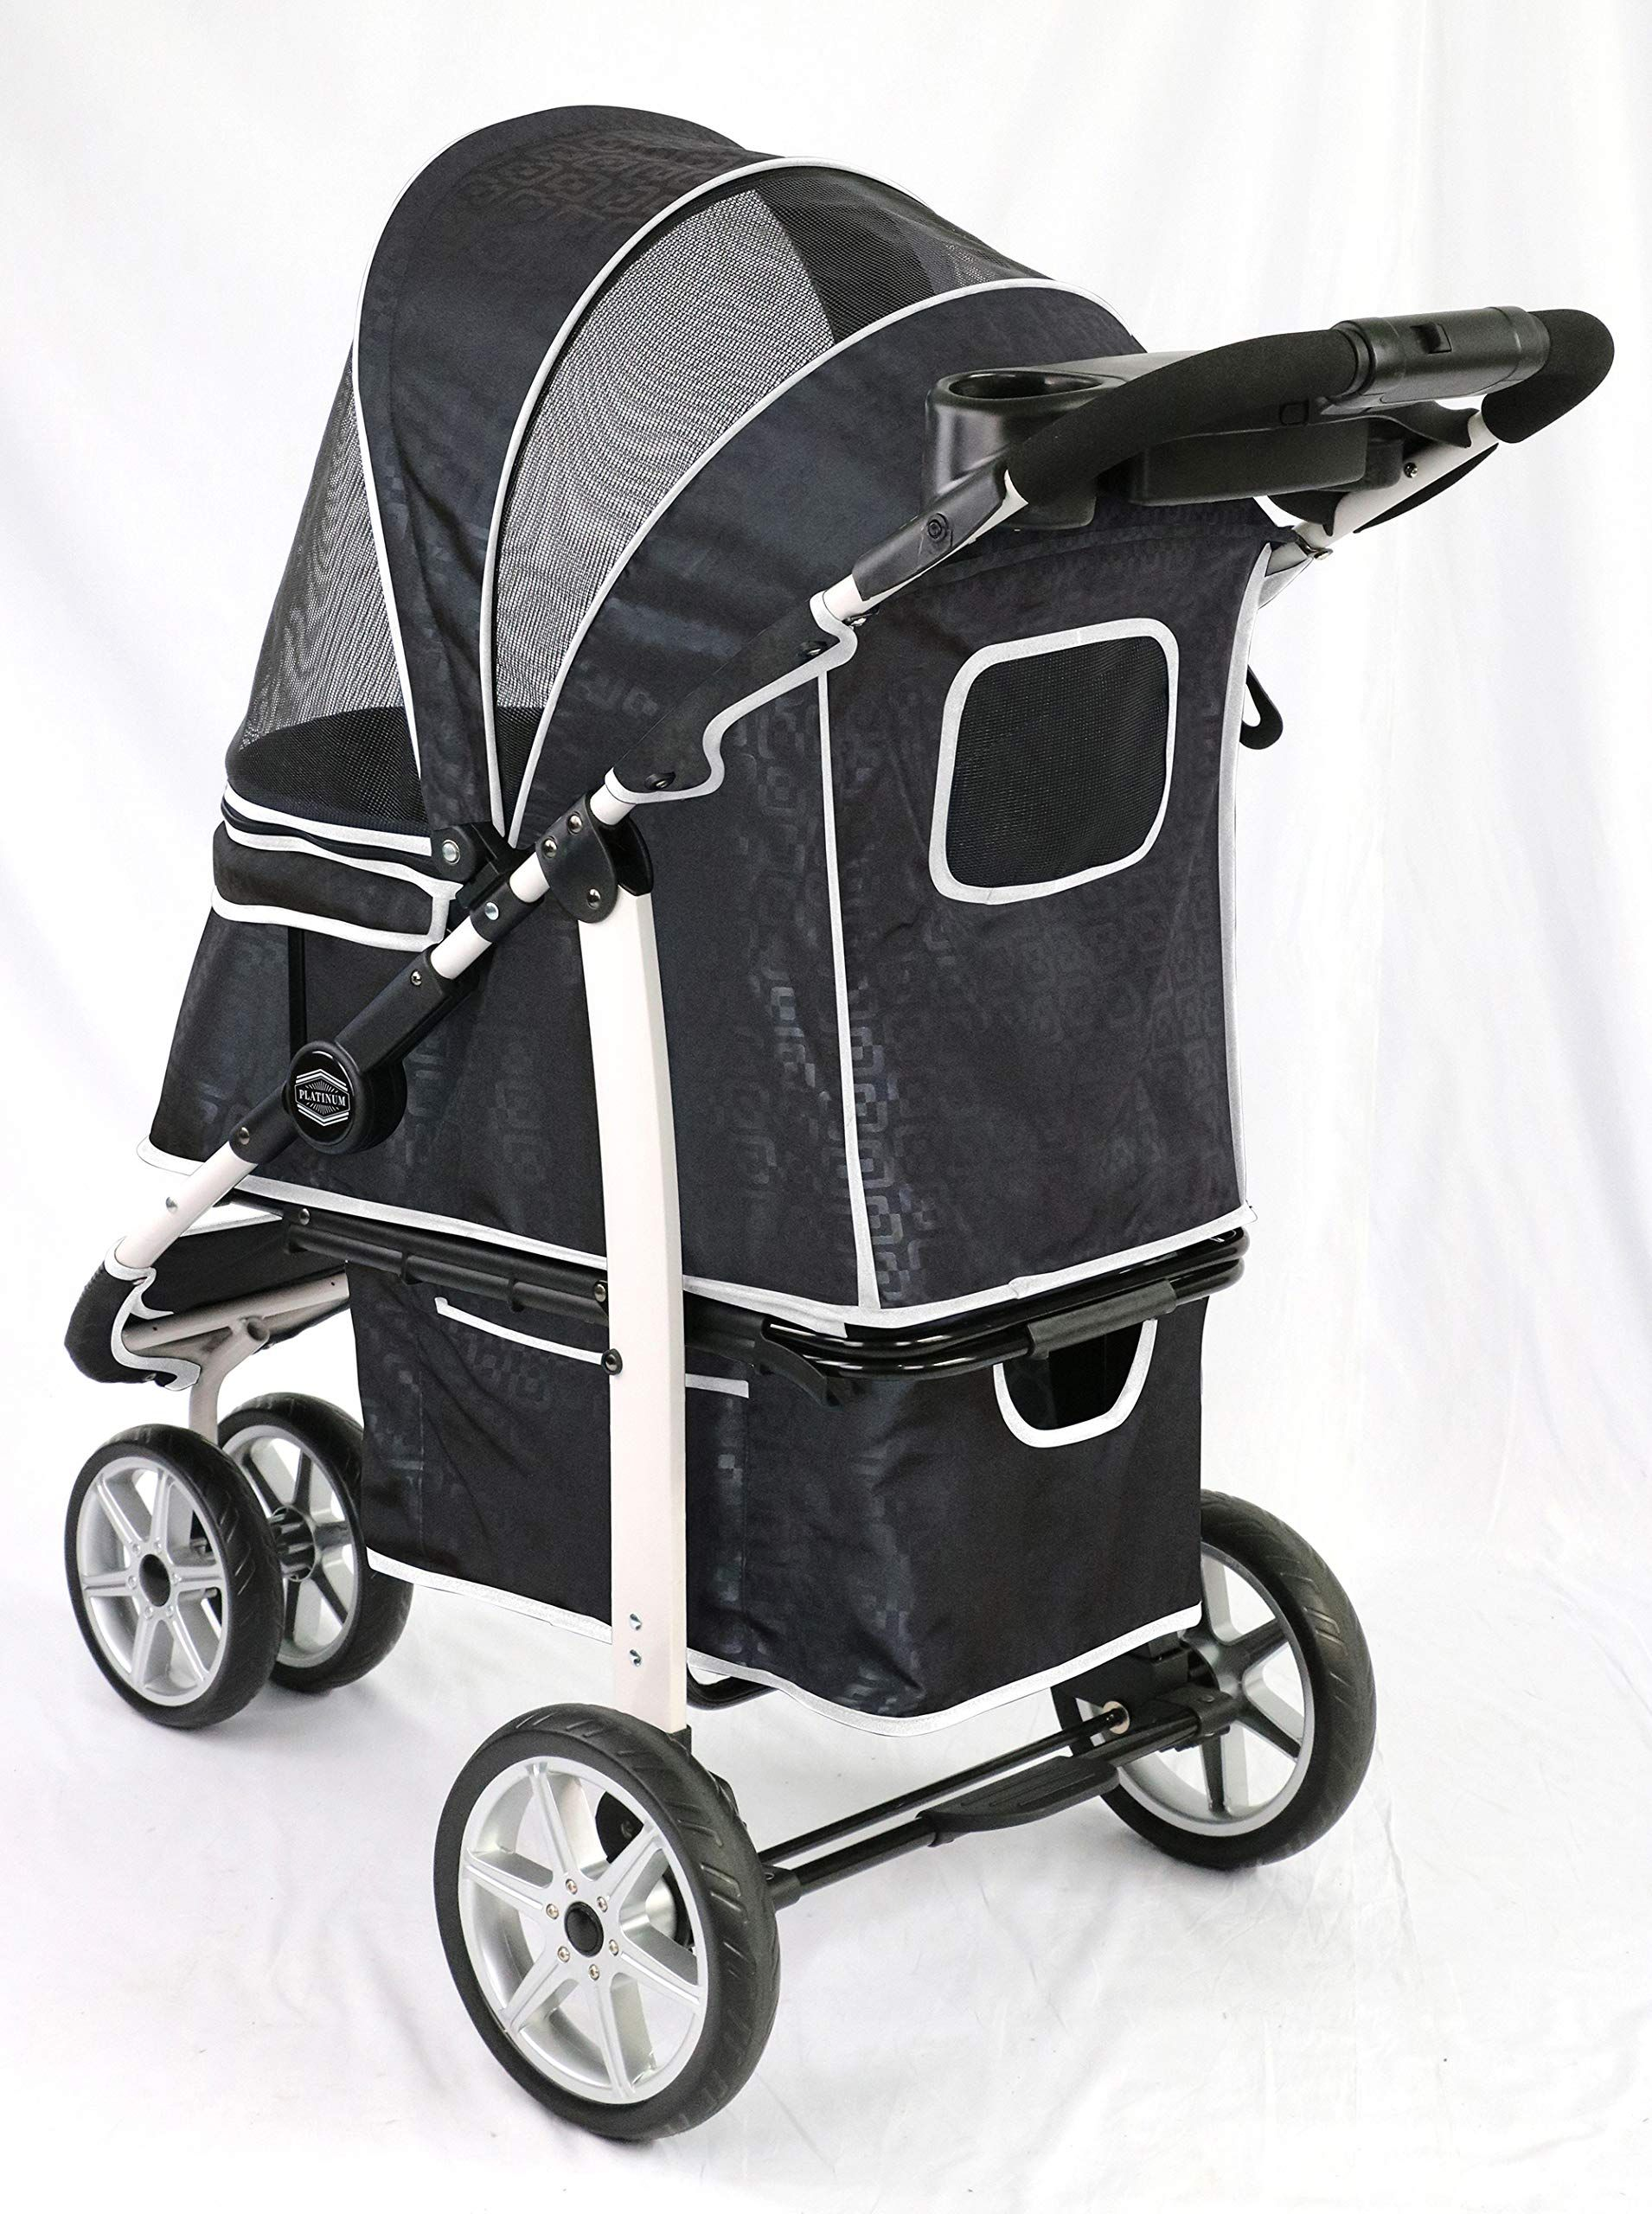 Gen7Pets Premium Monaco Stroller for Dogs and Cats up to